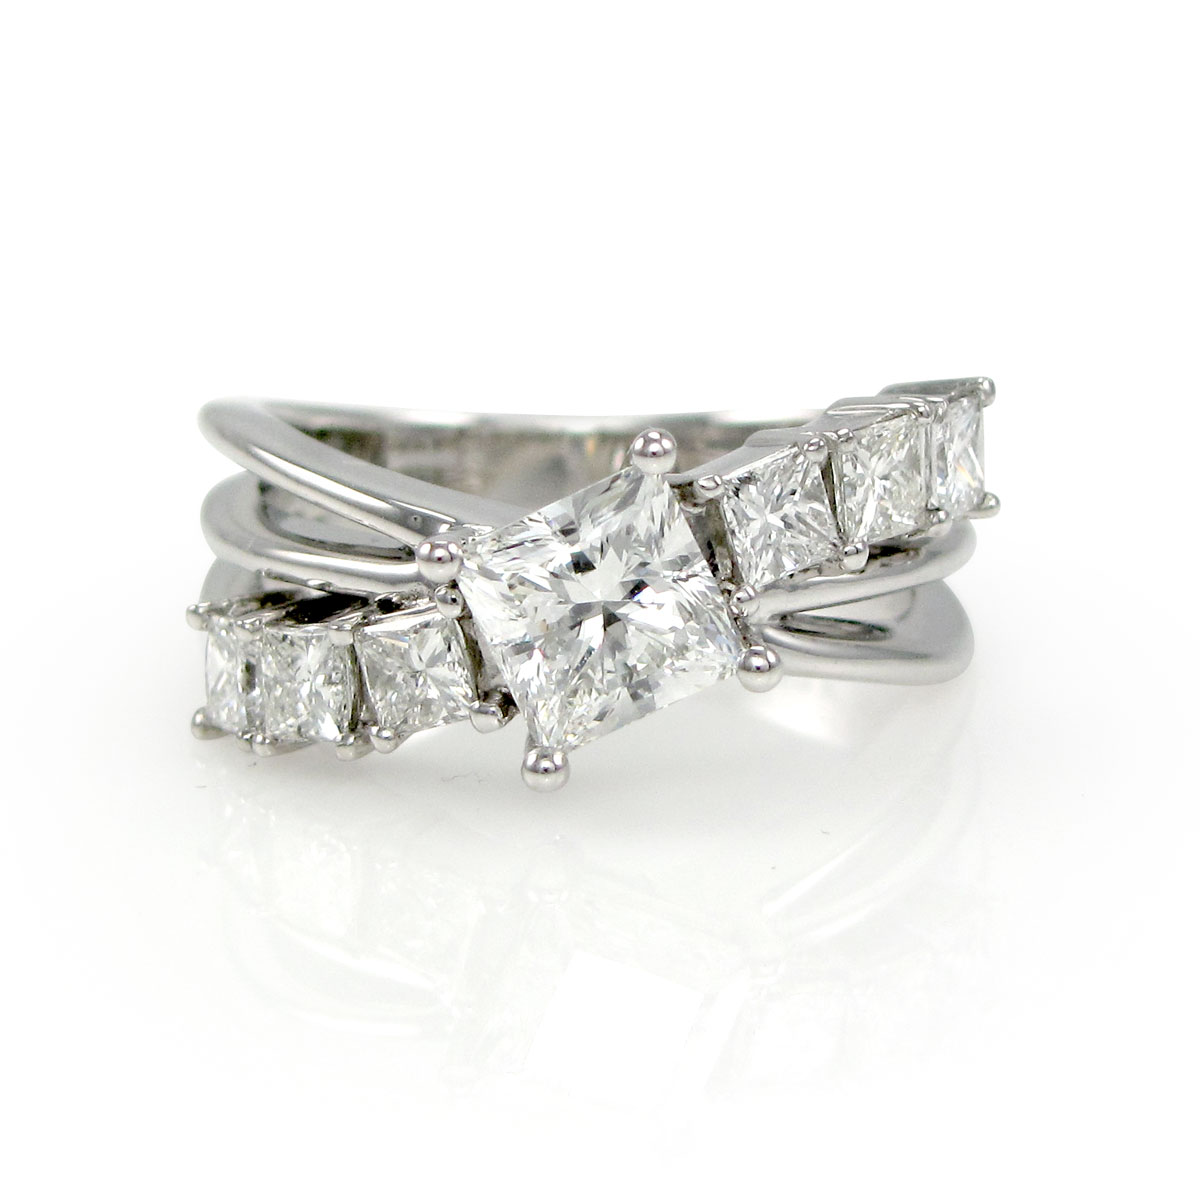 Fancy Split-Shank Ring